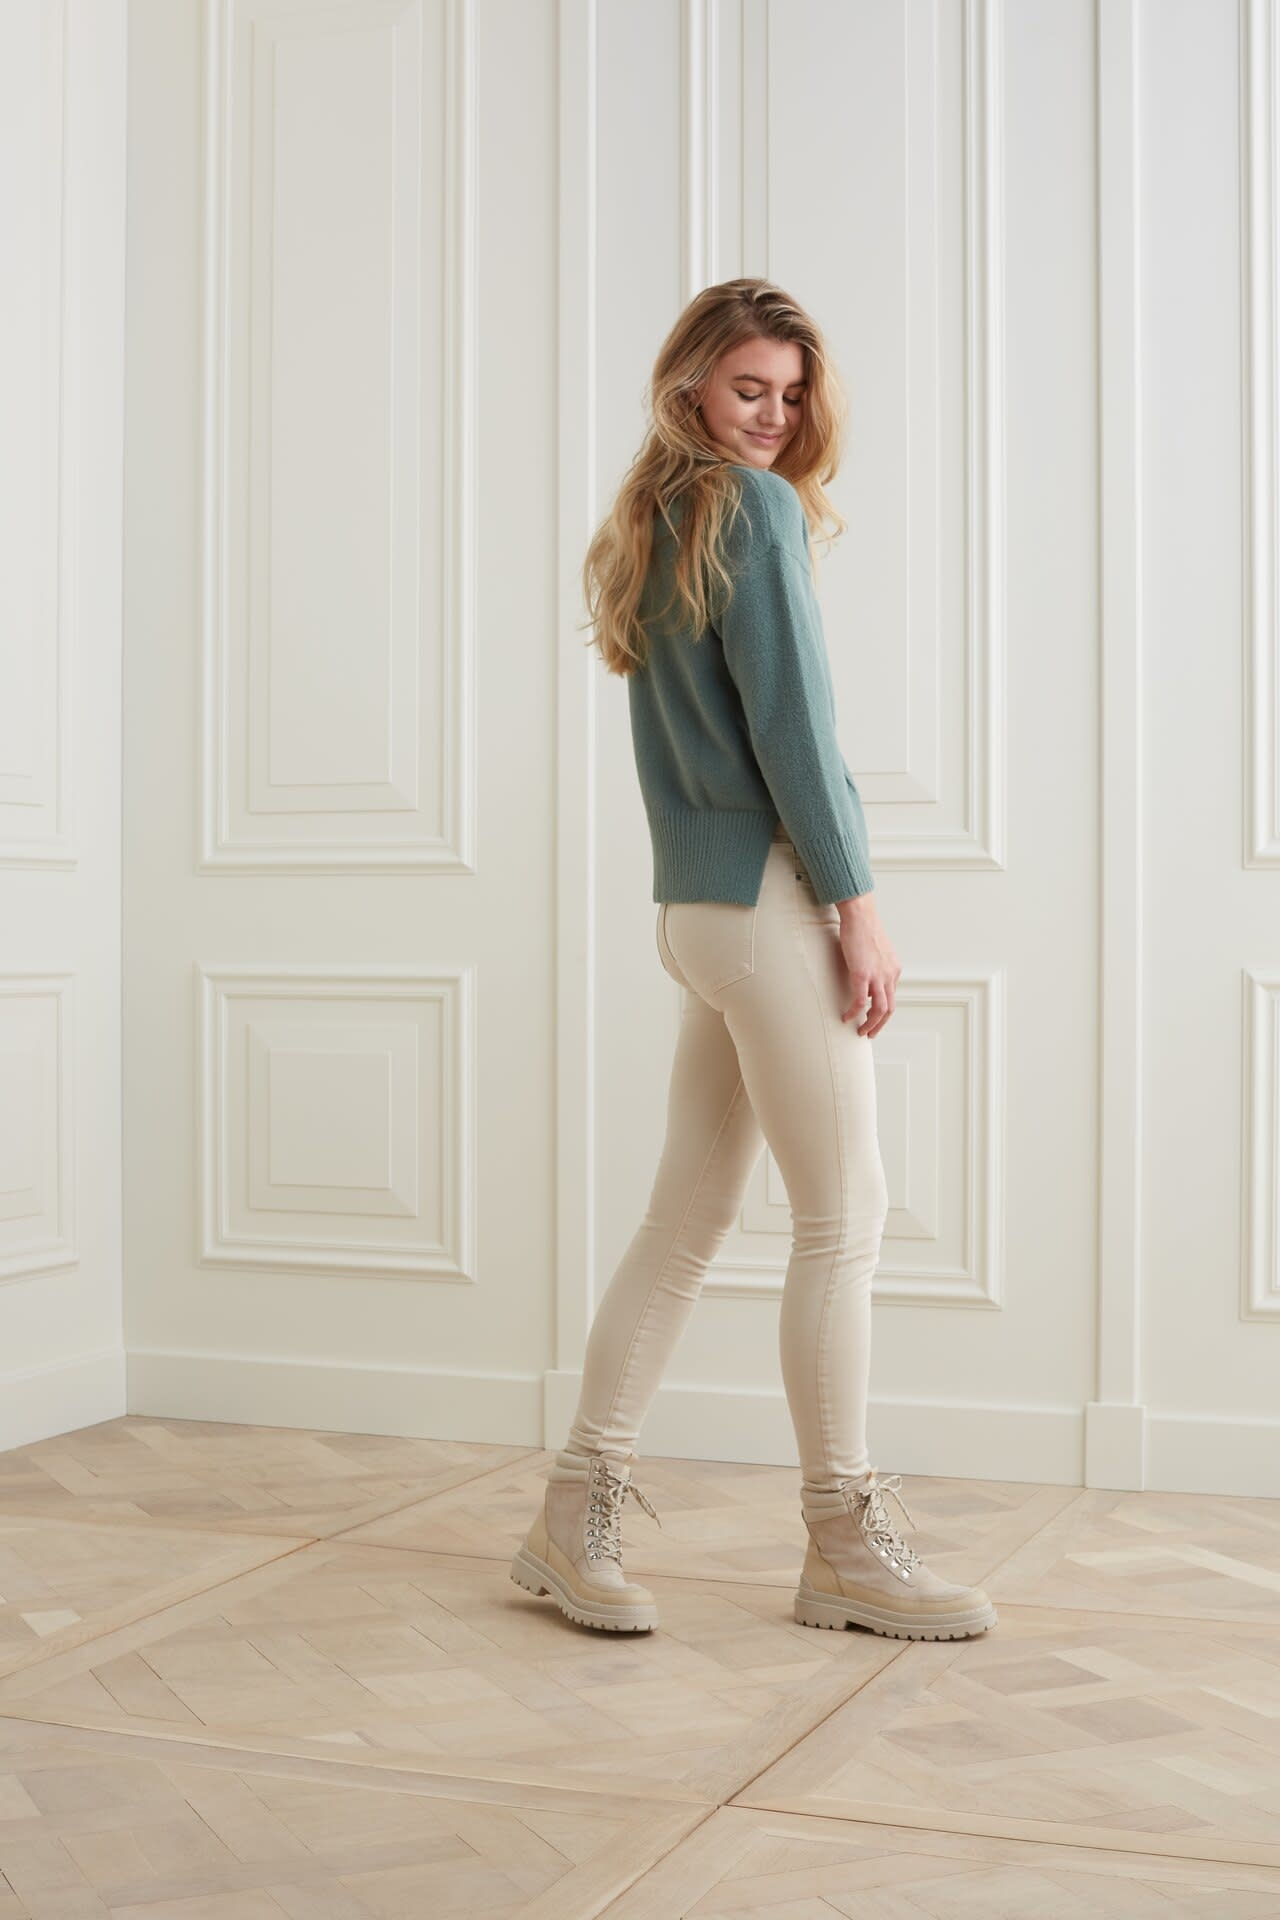 YAYA Women Sweater with vertical seam at front body